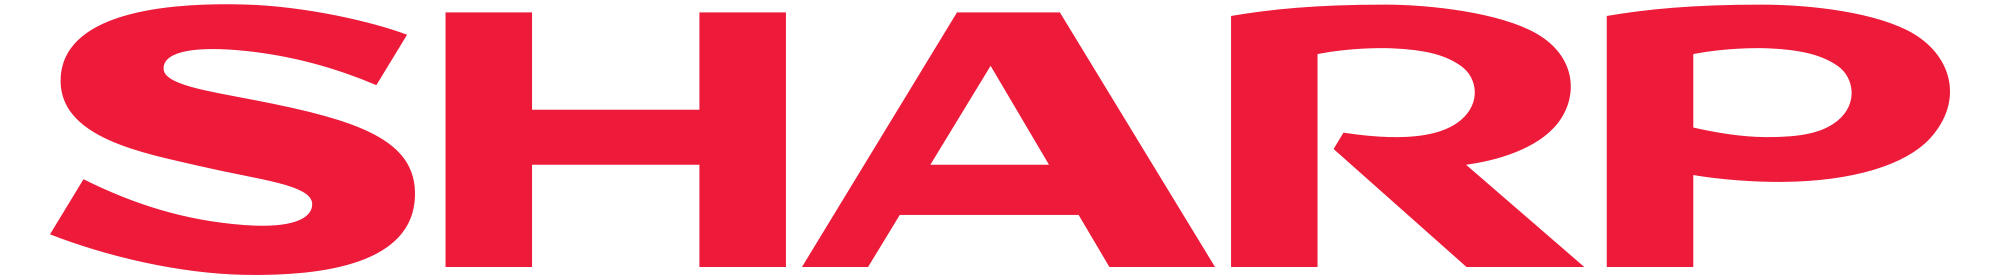 Sharp_logo.png